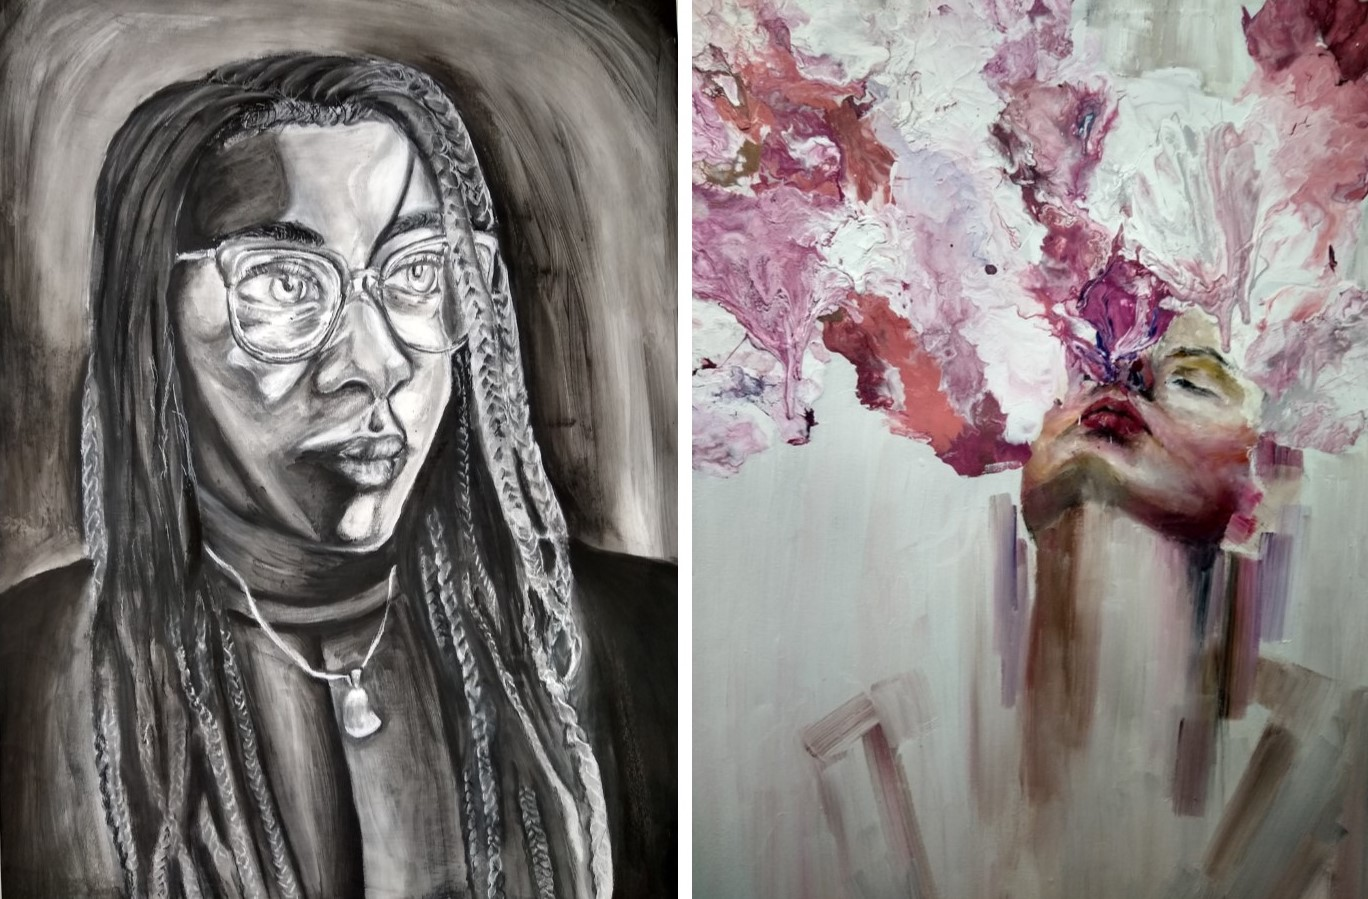 MCCC to Host Exhibition of Works by High School Students in Berks, Chester, Montgomery Counties